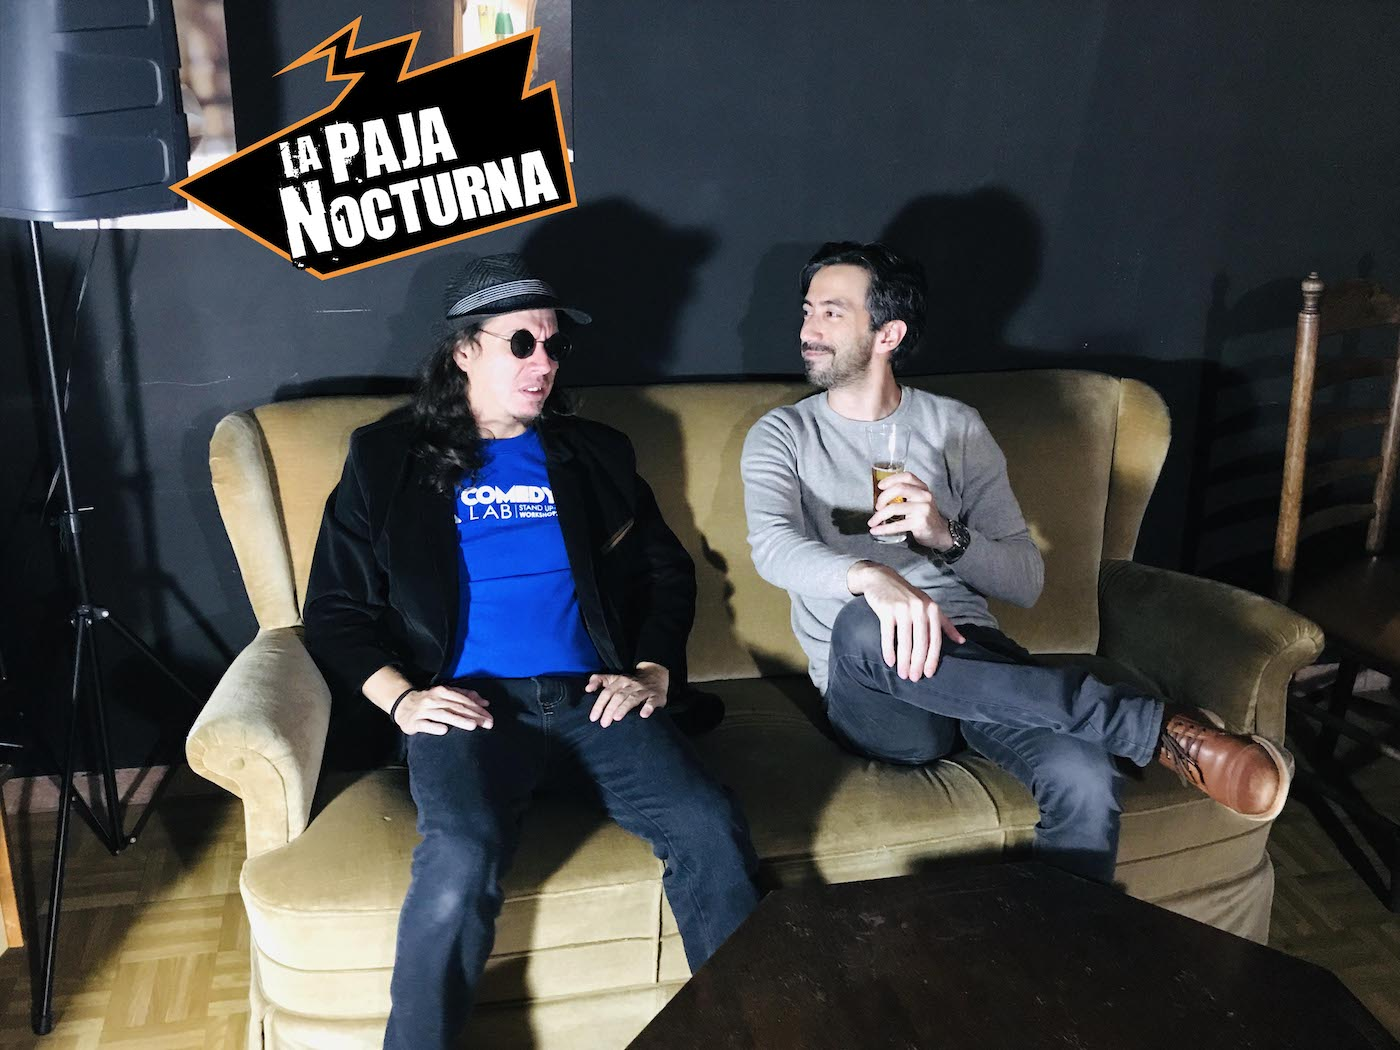 La Paja Nocturna Podcast Episodio 42